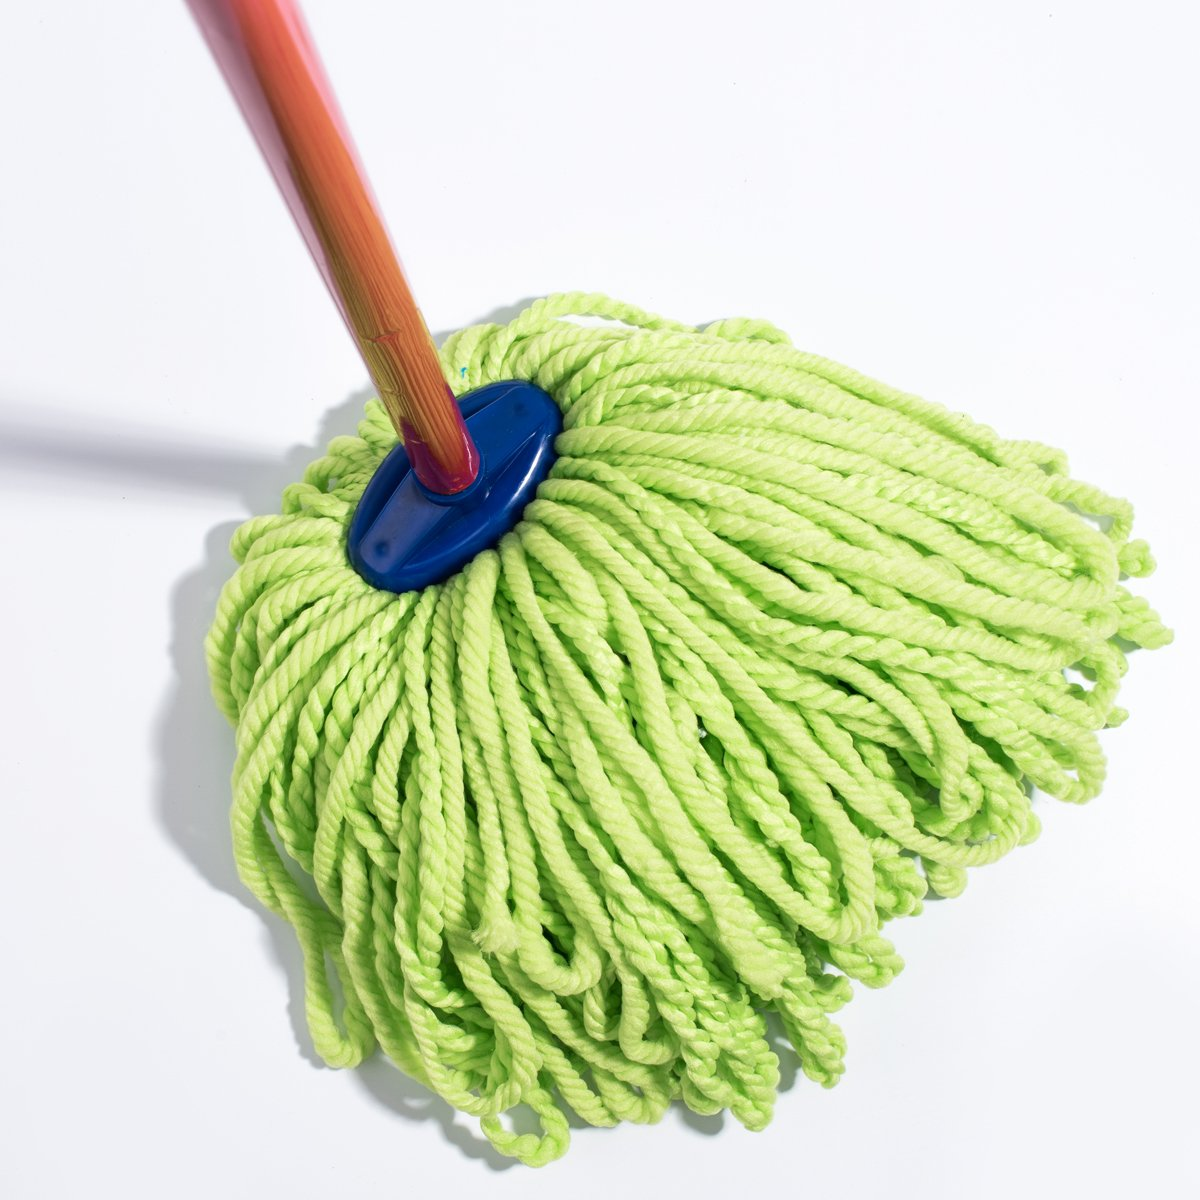 QIPENG 12'' Professional Microfiber Mop Head 4 Pack, Washable Wet and Dry Mop Heads, Super Absorbent Mop (Green) by QIPENG (Image #5)